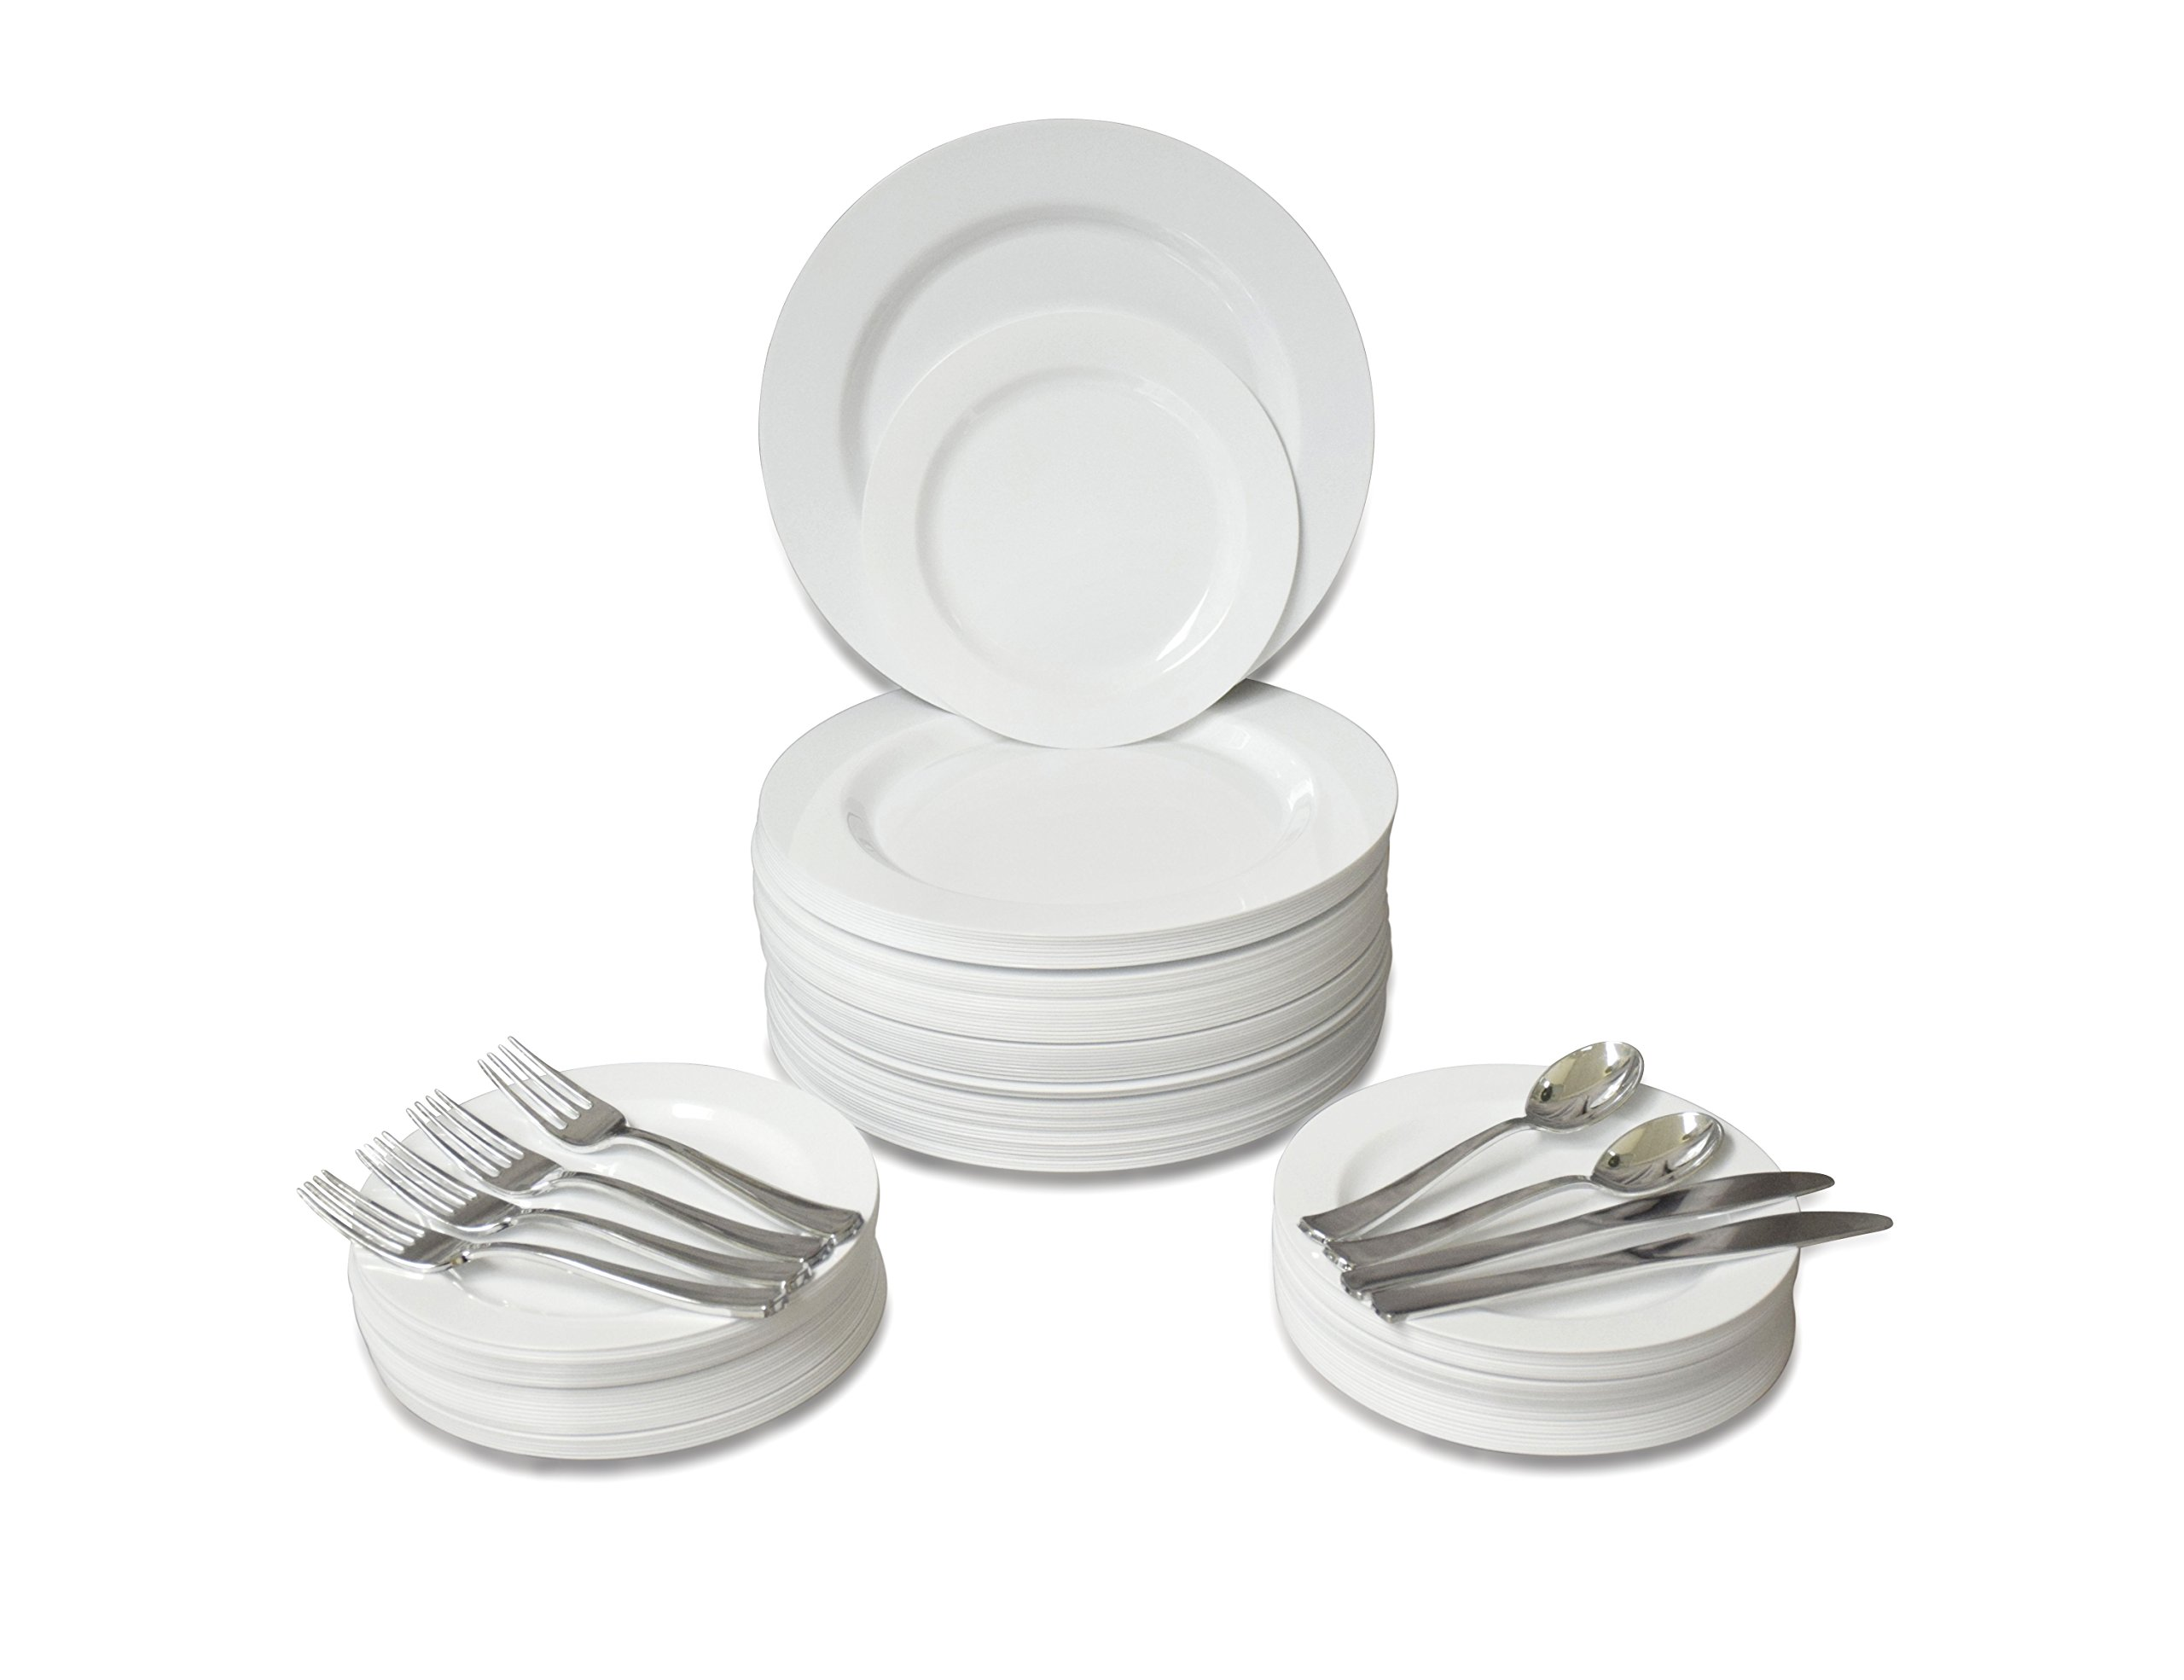 '' OCCASIONS '' 720 PCS / 120 GUEST Wedding Disposable Plastic Plate and Silverware Combo Set , ( Plain White plates, Silver silverware ) by OCCASIONS FINEST PLASTIC TABLEWARE